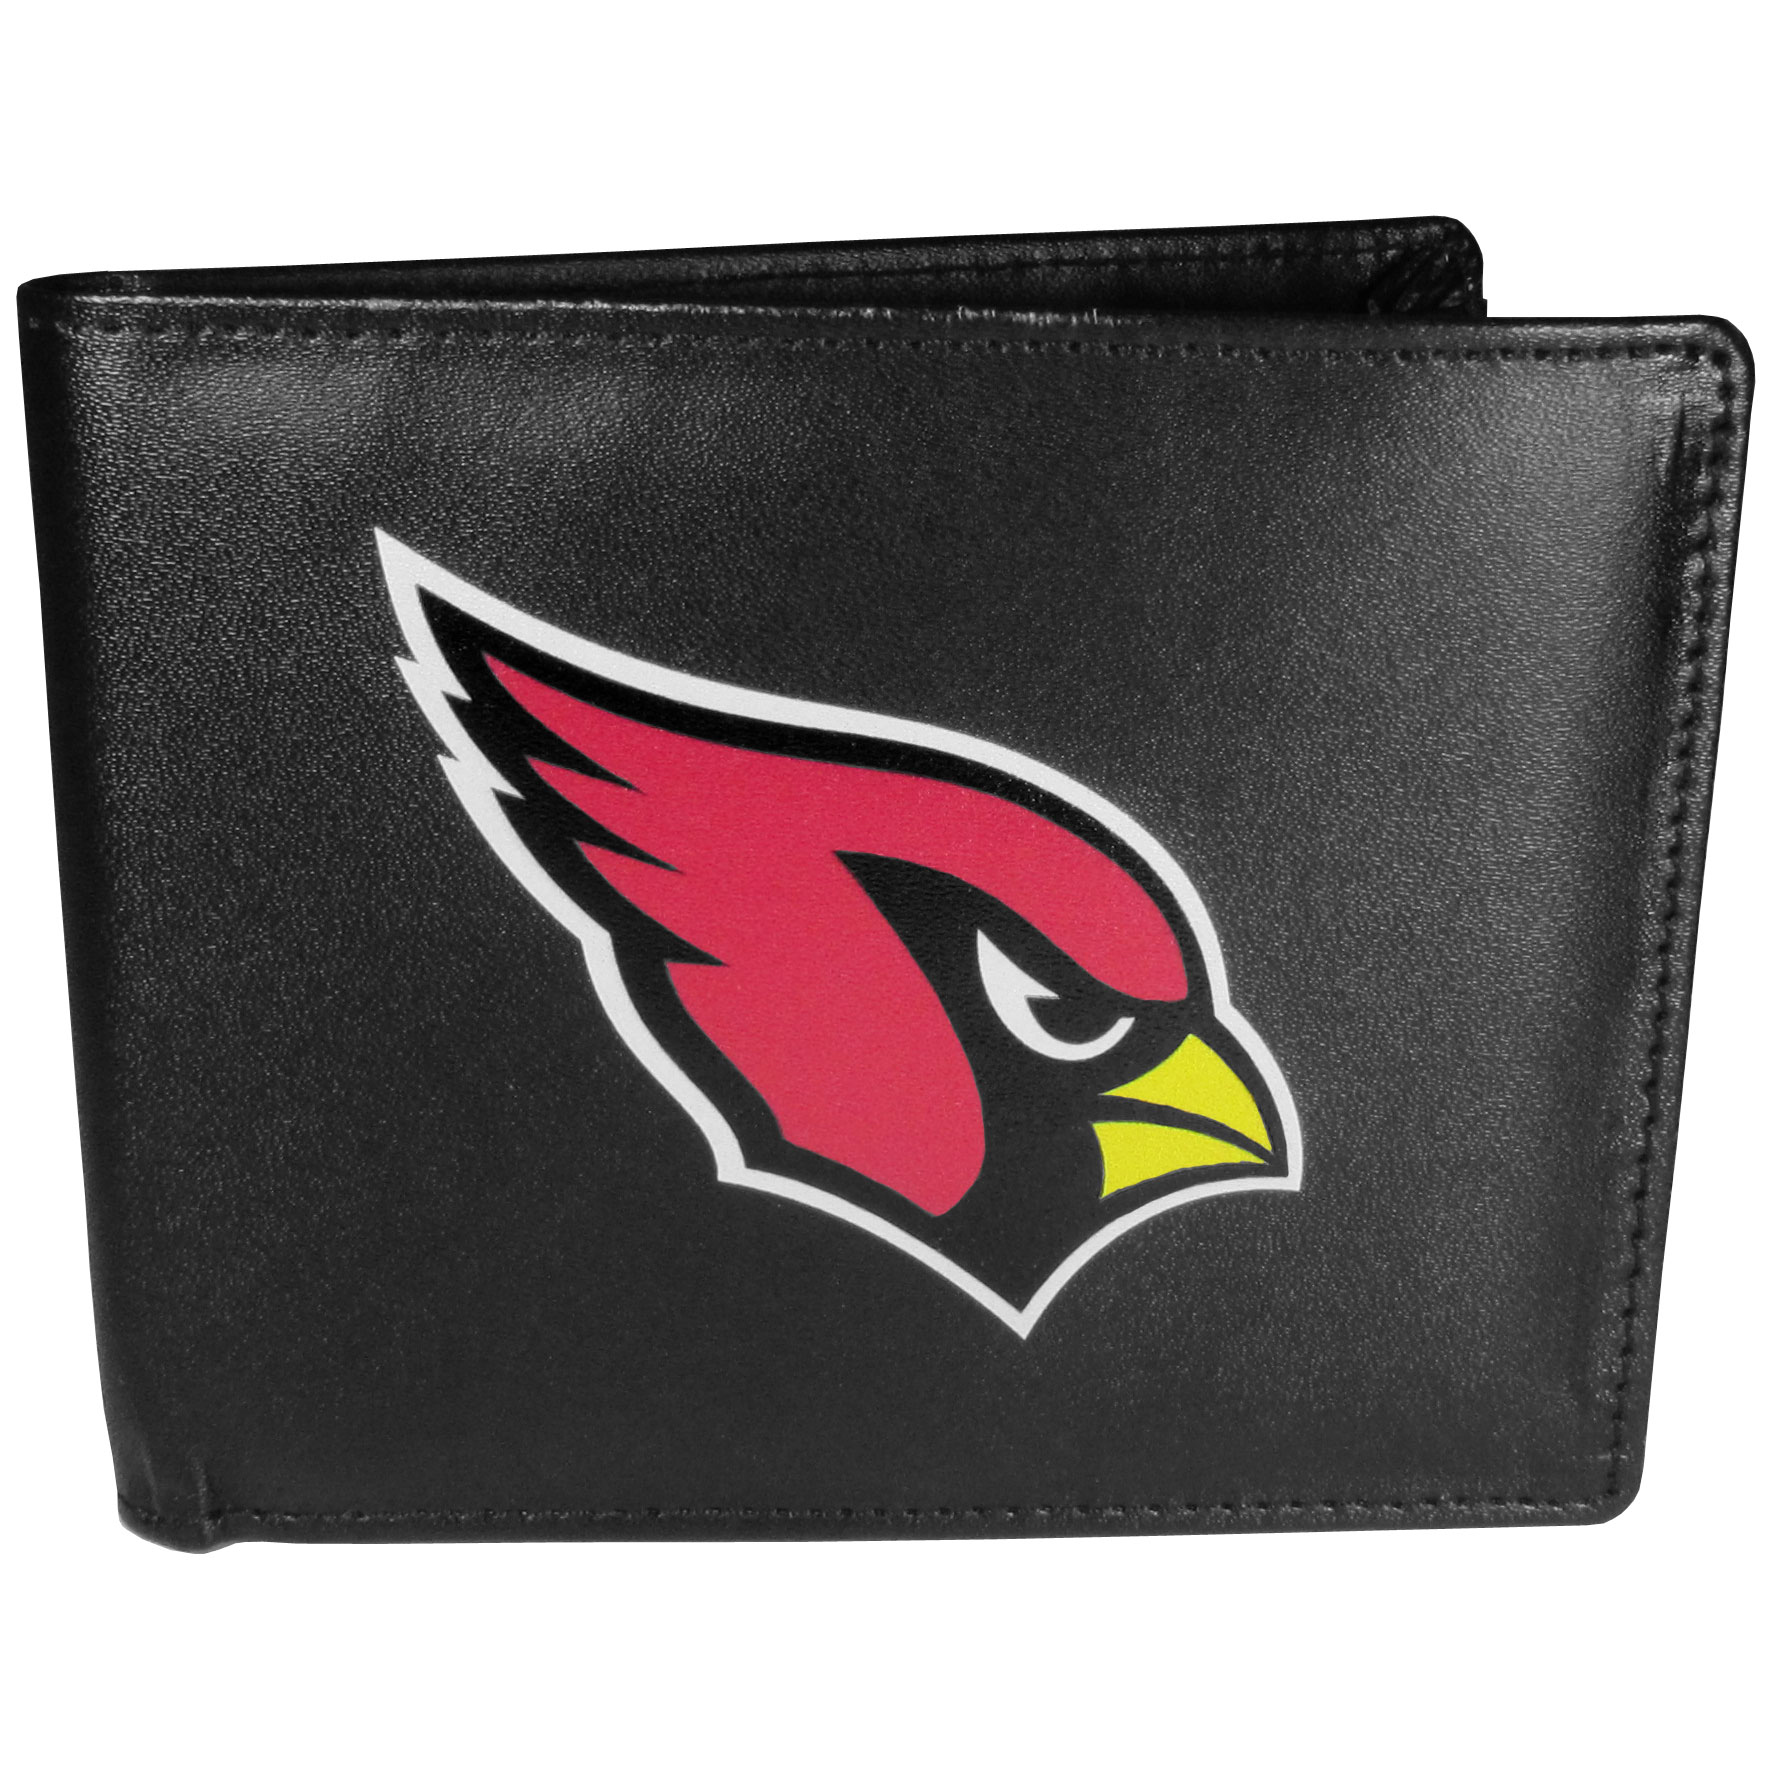 Arizona Cardinals Bi-fold Wallet Large Logo - Sports fans do not have to sacrifice style with this classic bi-fold wallet that sports the Arizona Cardinals extra large logo. This men's fashion accessory has a leather grain look and expert craftmanship for a quality wallet at a great price. The wallet features inner credit card slots, windowed ID slot and a large billfold pocket. The front of the wallet features a printed team logo.